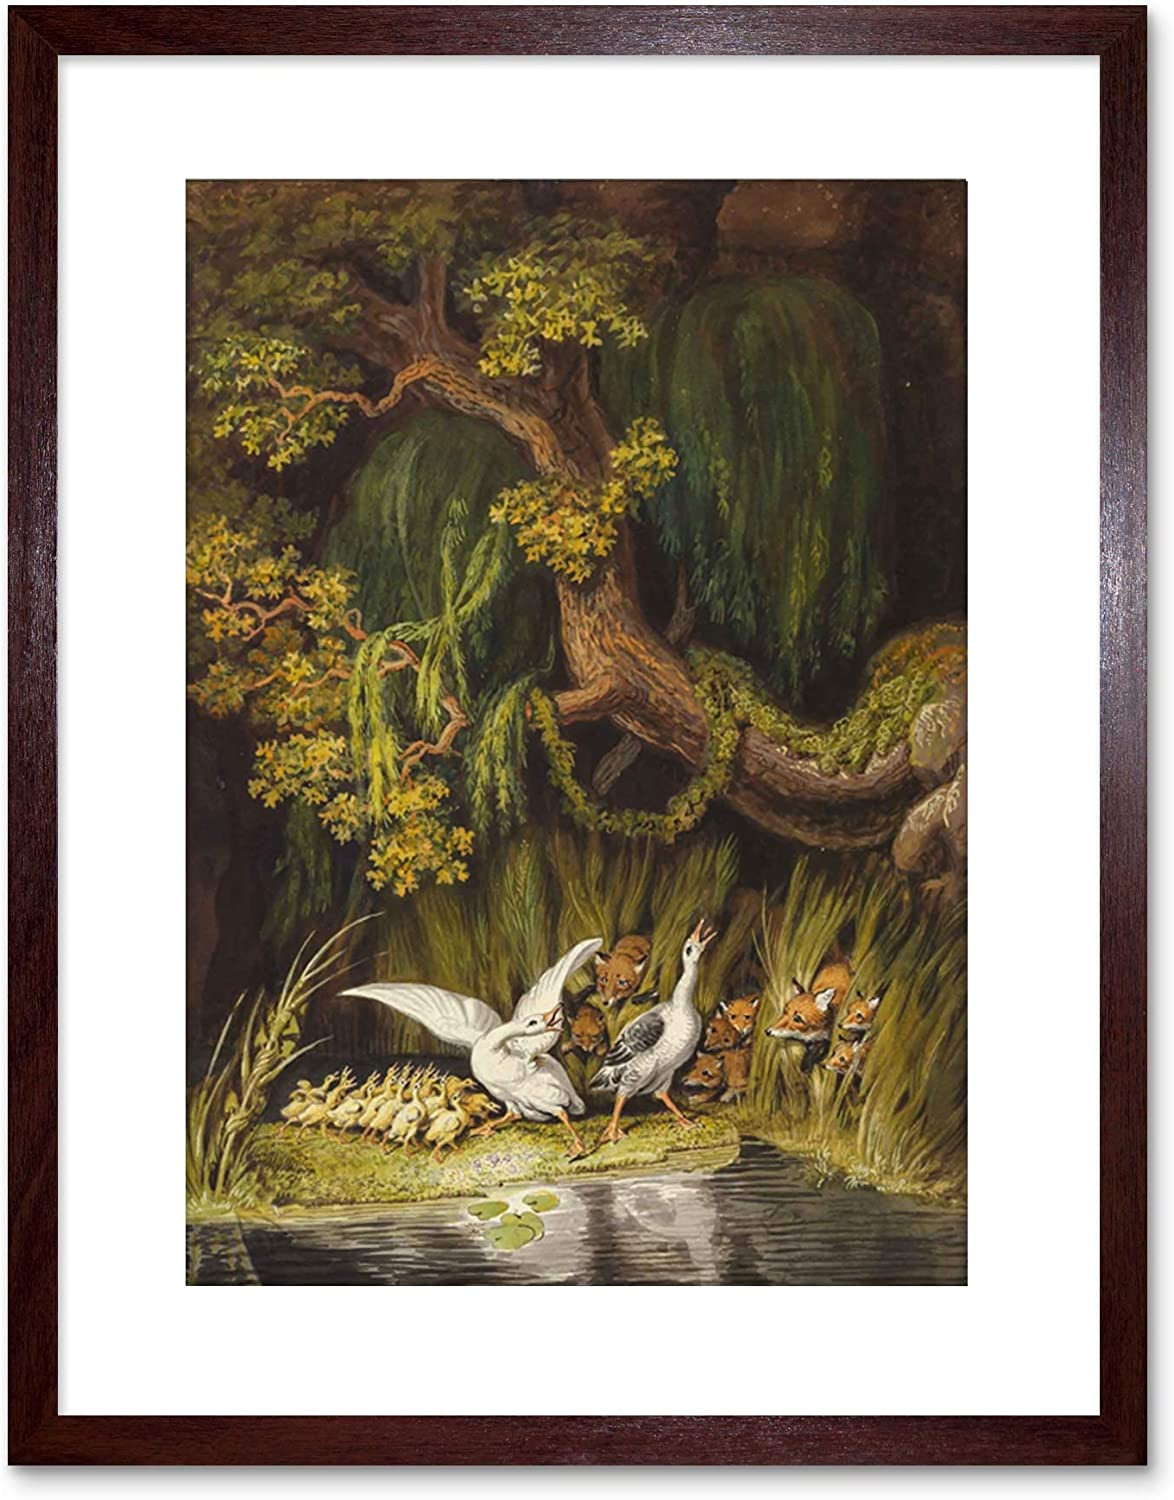 Wee Blue Coo Painting Wild Tischbein Goose Gander Foxes Rushes Framed Art Print F97x10852 Home Kitchen